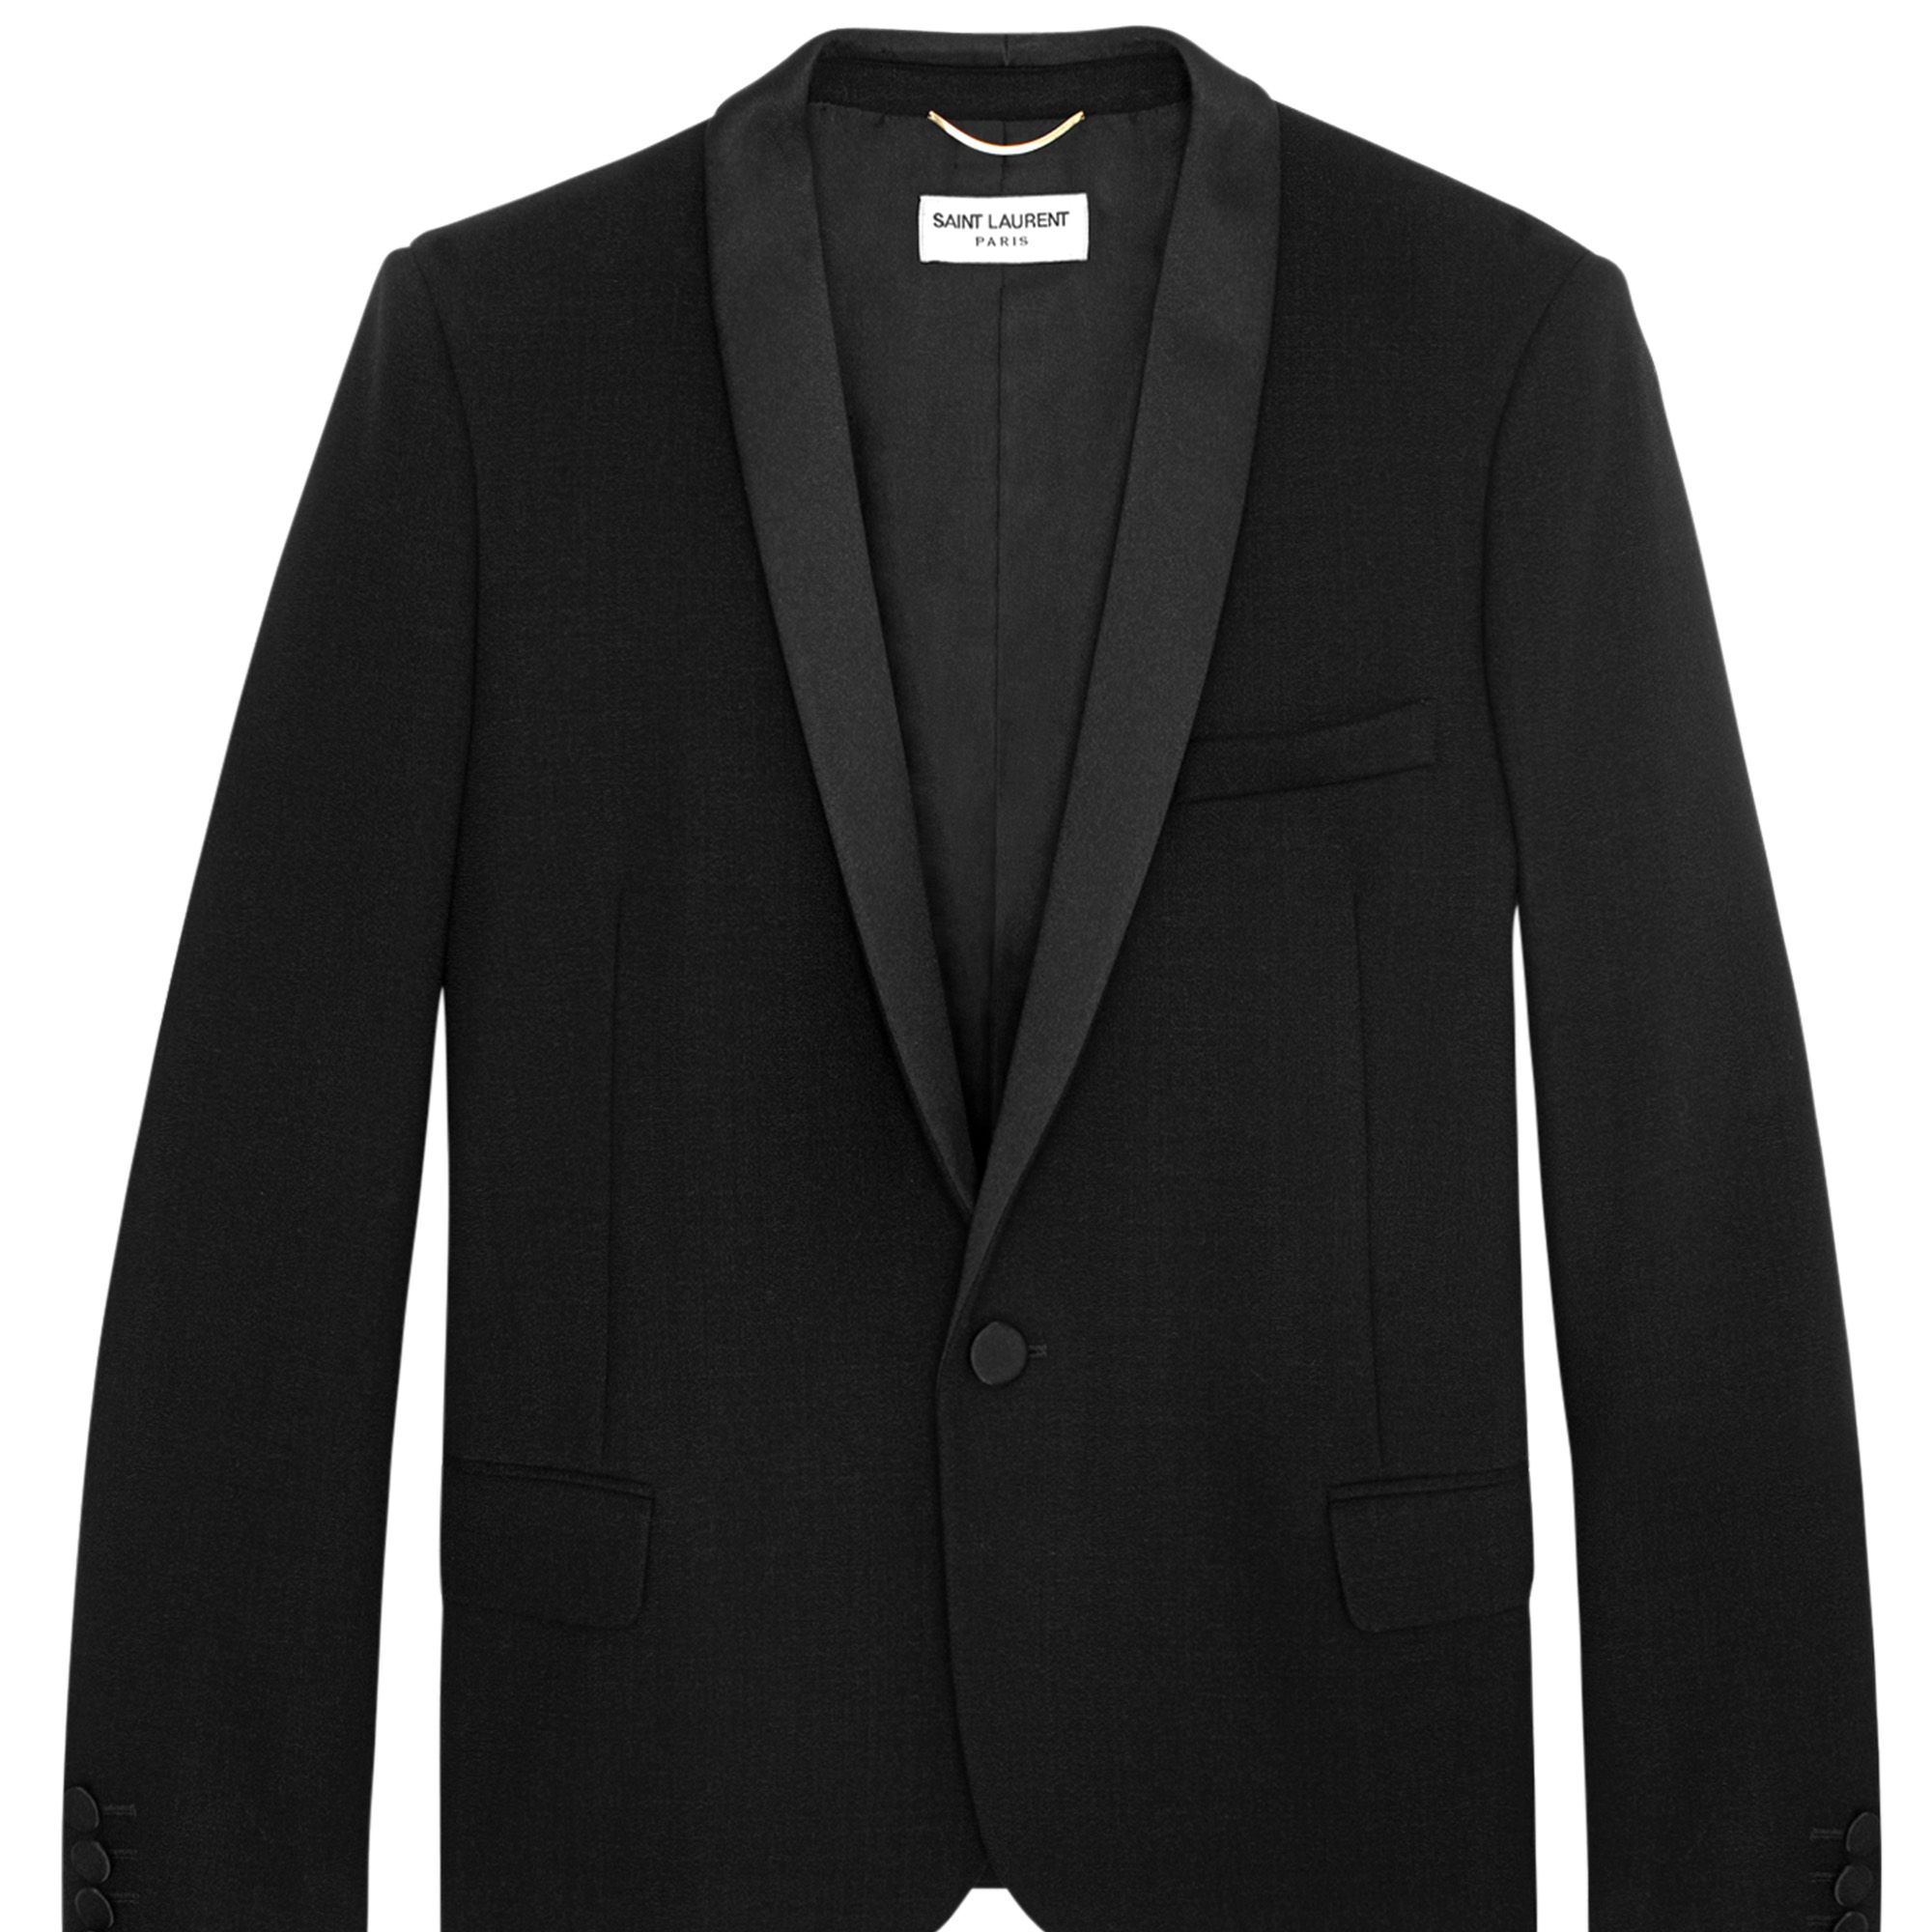 <strong>Saint Laurent by Hedi Slimane</strong> jacket, $3,490, 212-980-2970.